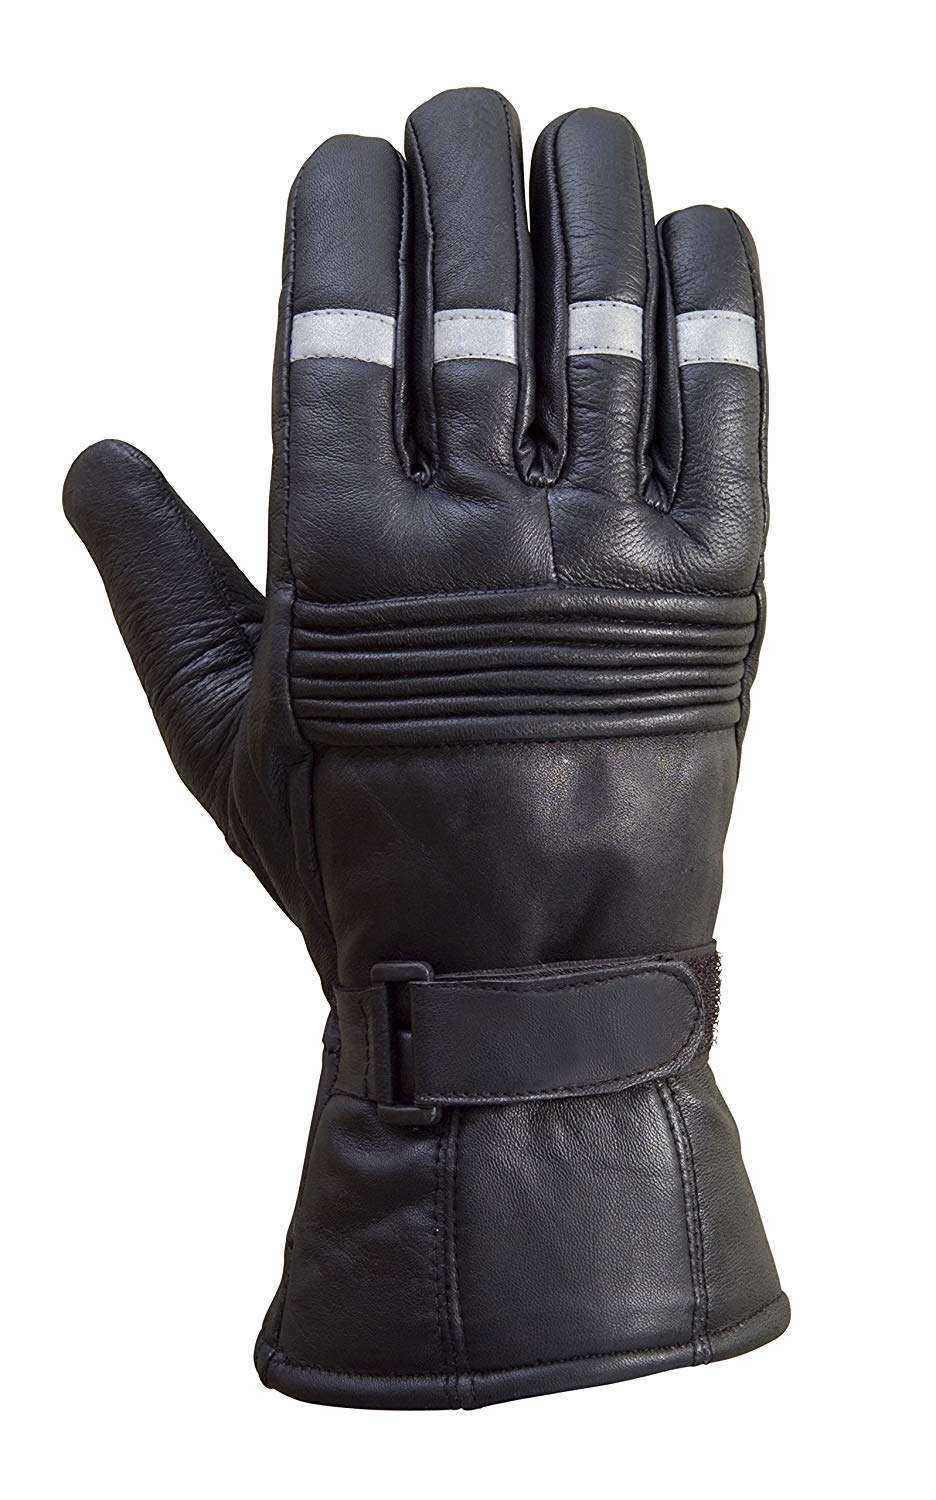 Biker-Reflective-Leather-Gloves-G6